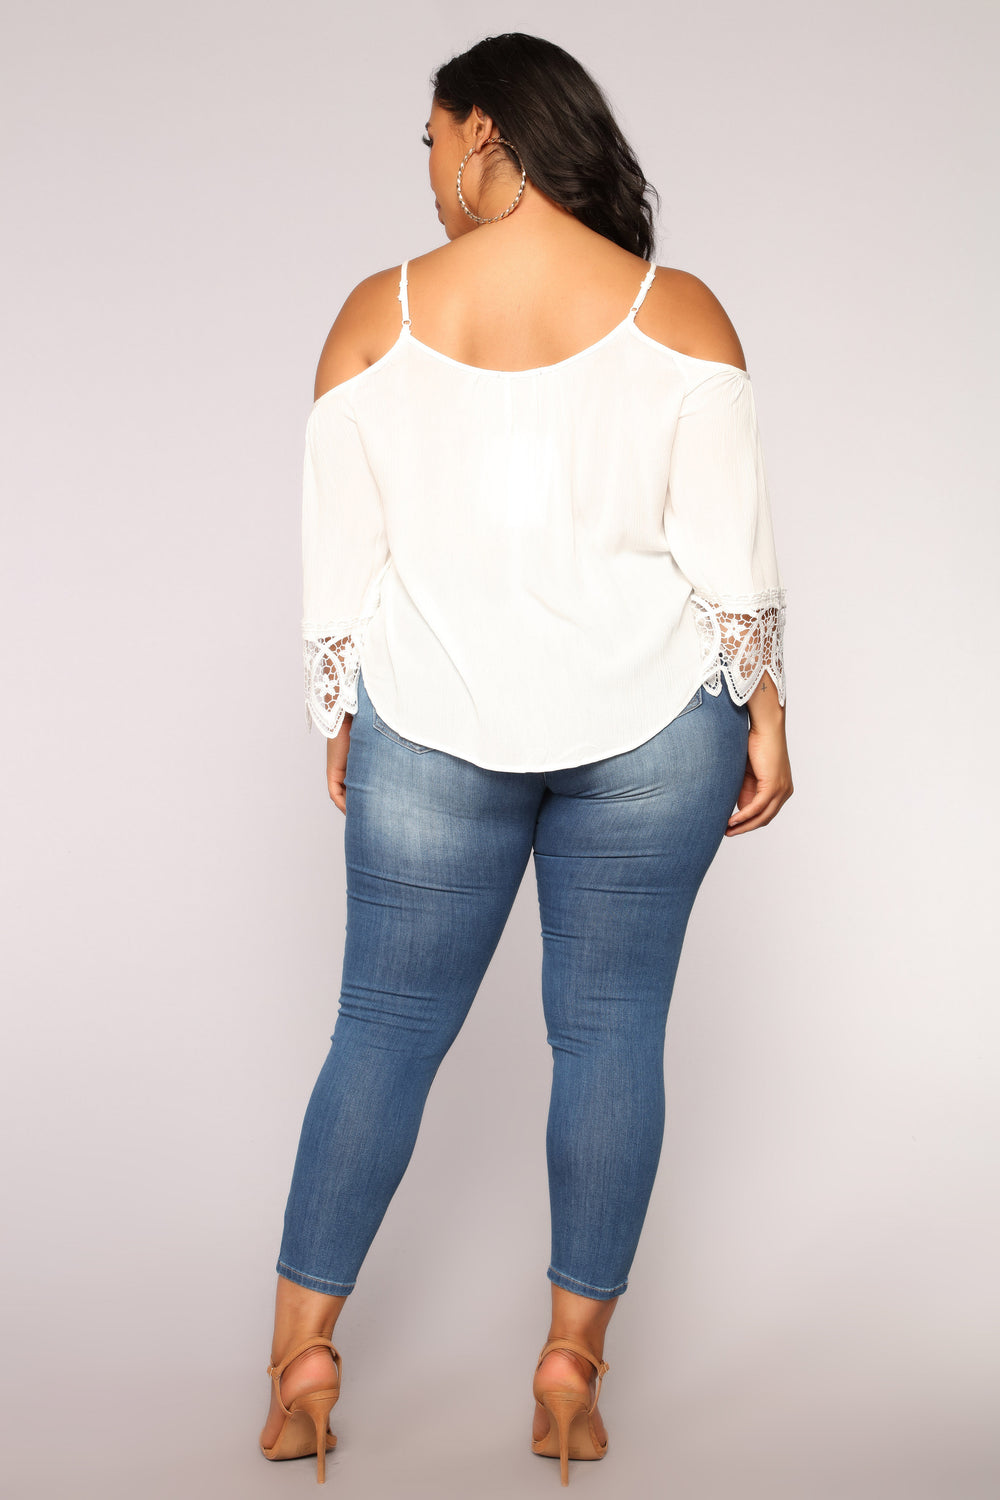 Sandcastles Lace Top - Off white